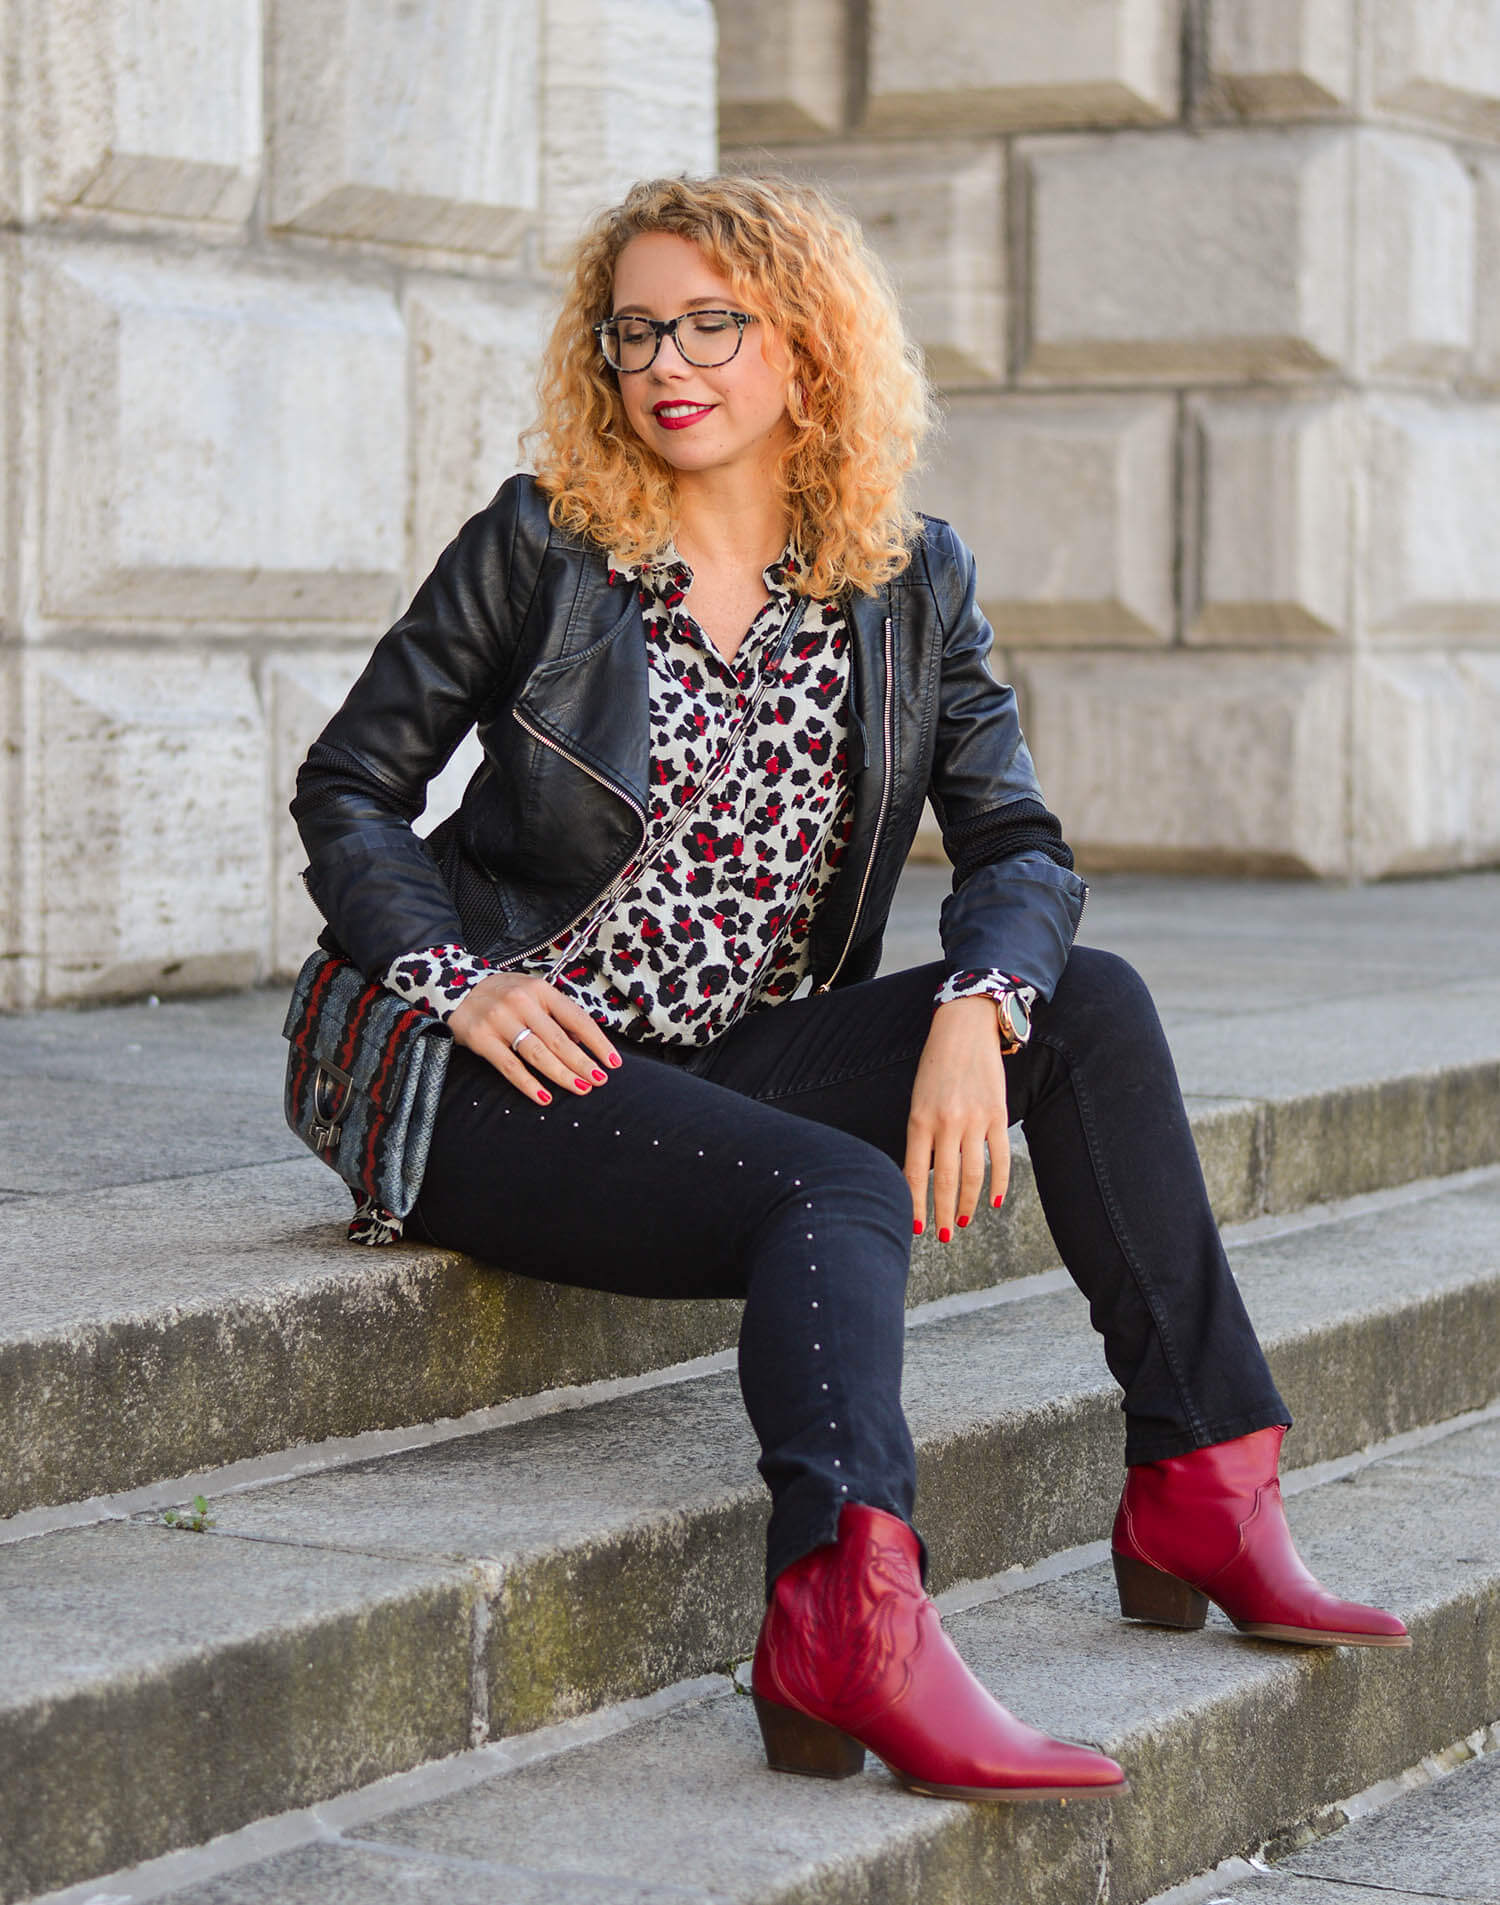 Animal-Print-Studded-Denim-Leather-Jacket-Cowboy-Boots-Fall-Outfit-kationette-fashionblogger-germany